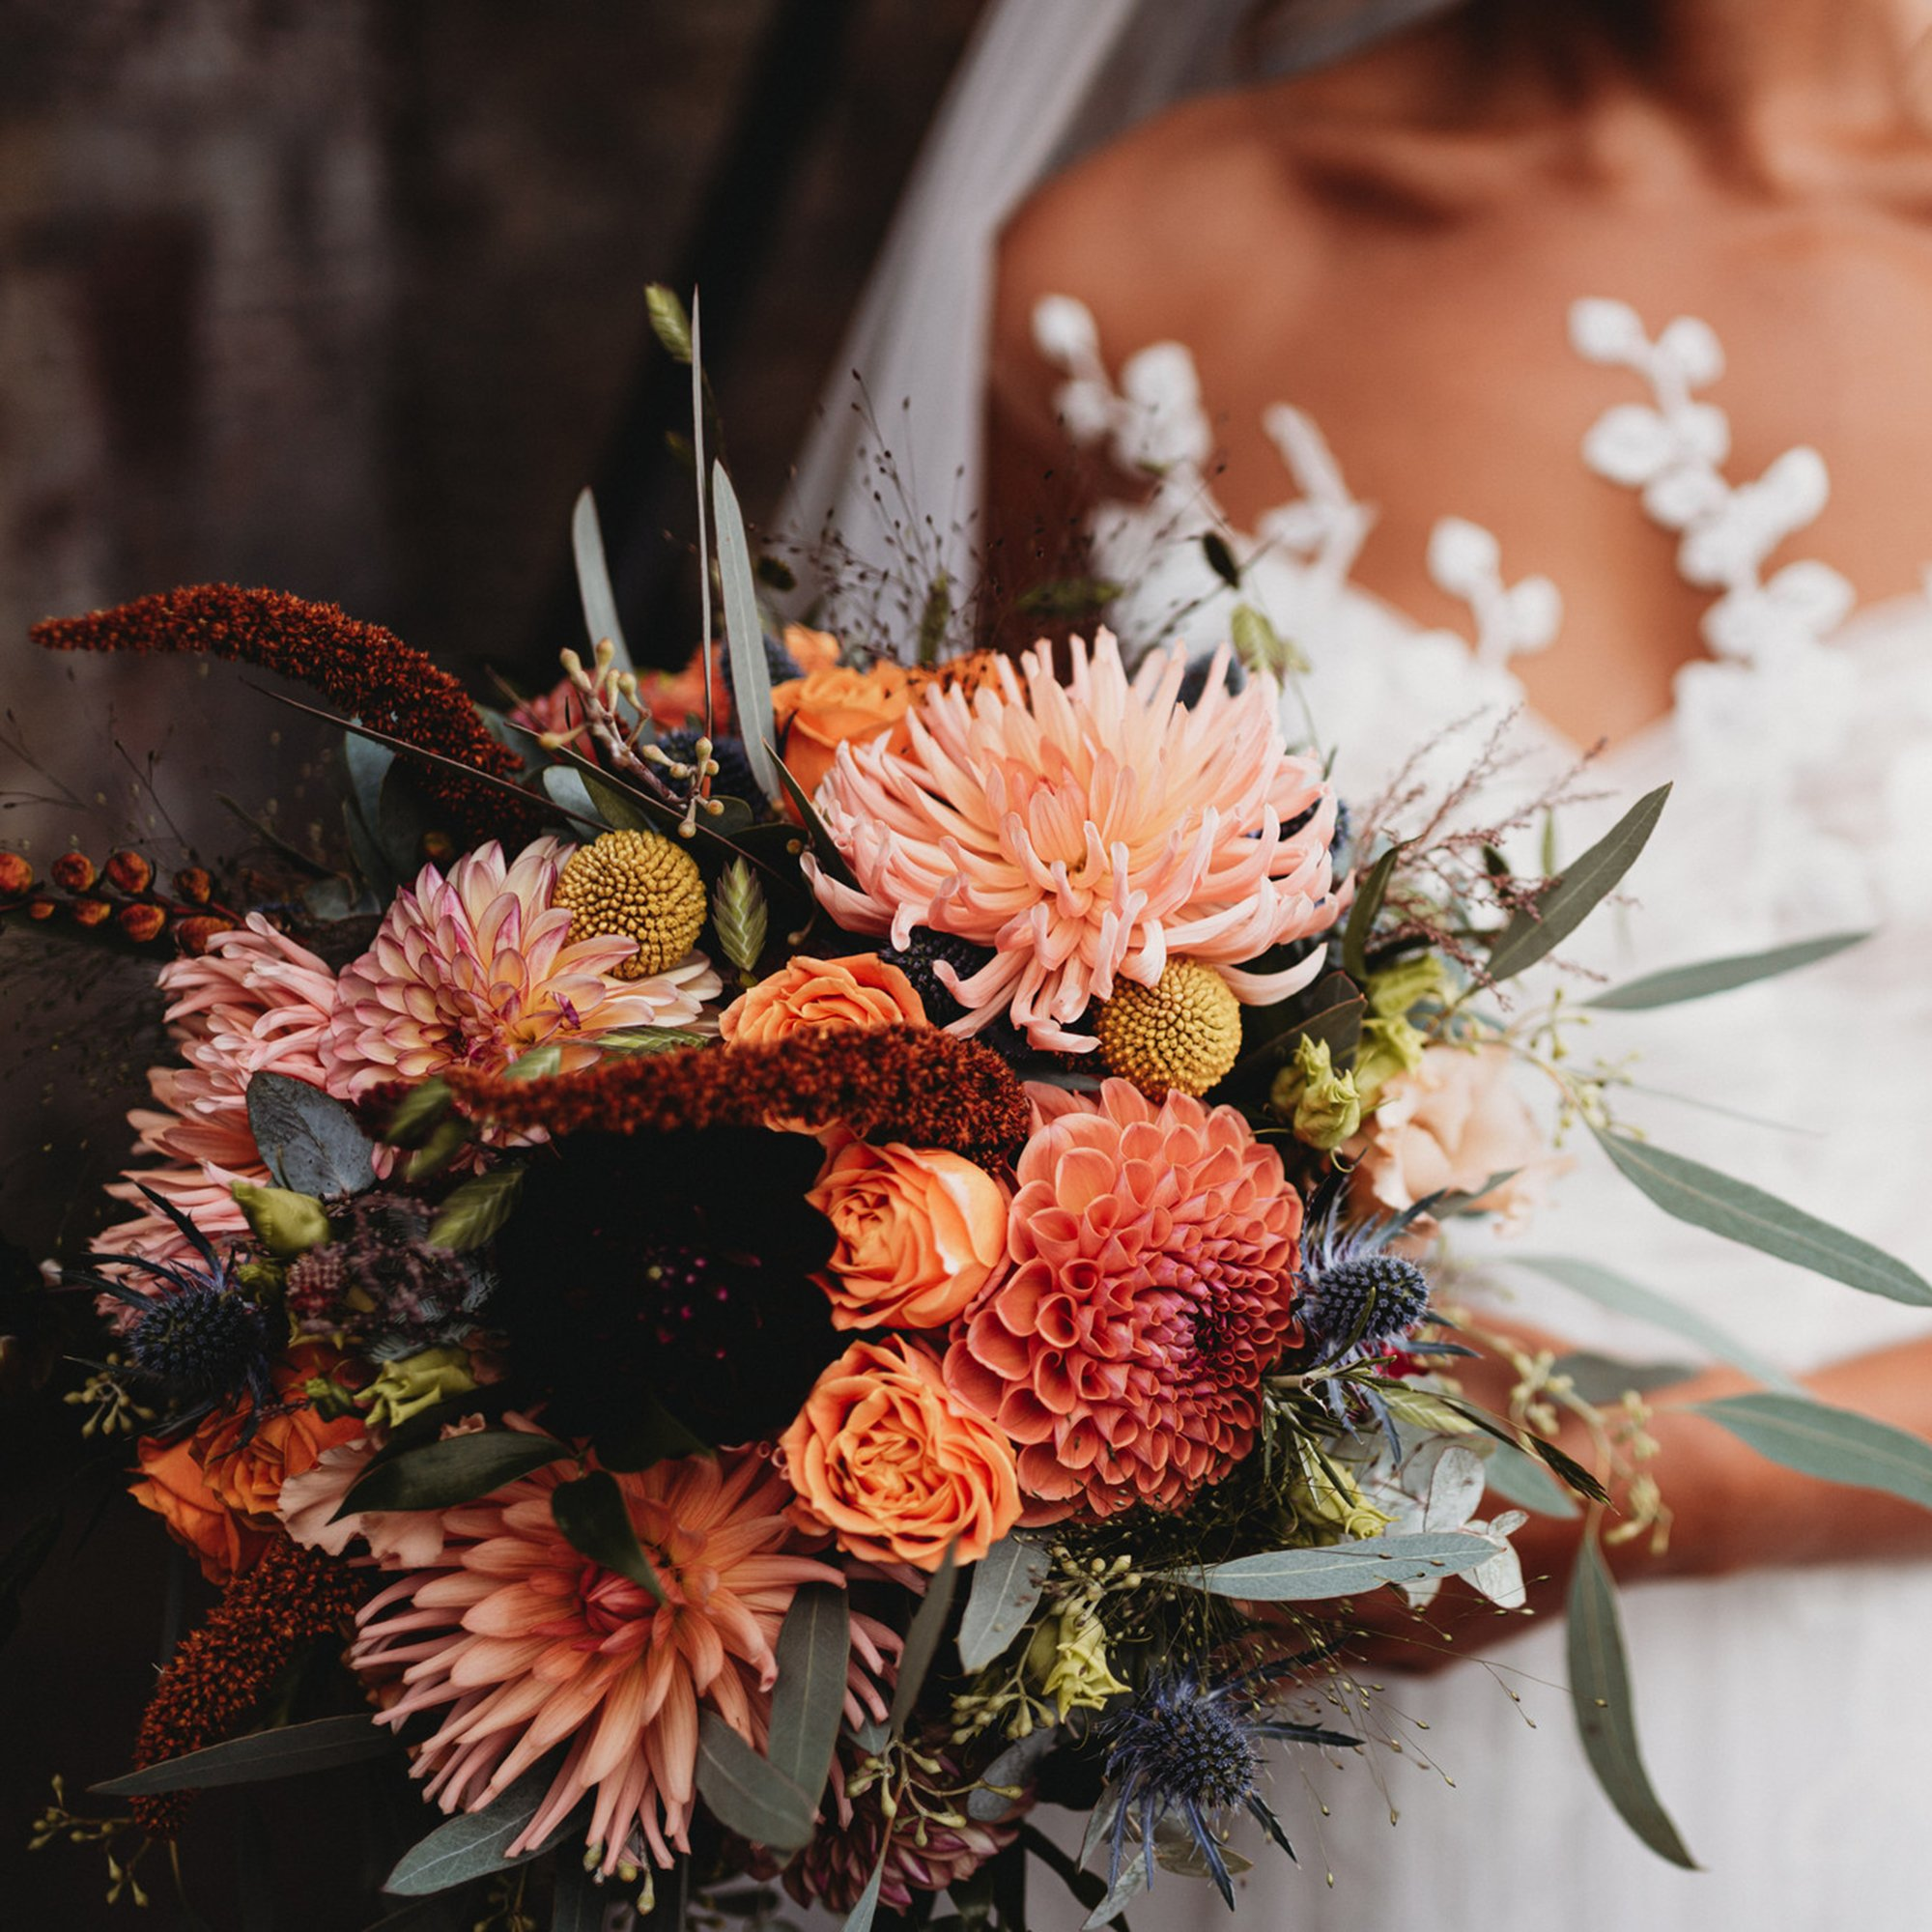 Choosing Flowers for Your Wedding Day | Flamboyant Invites